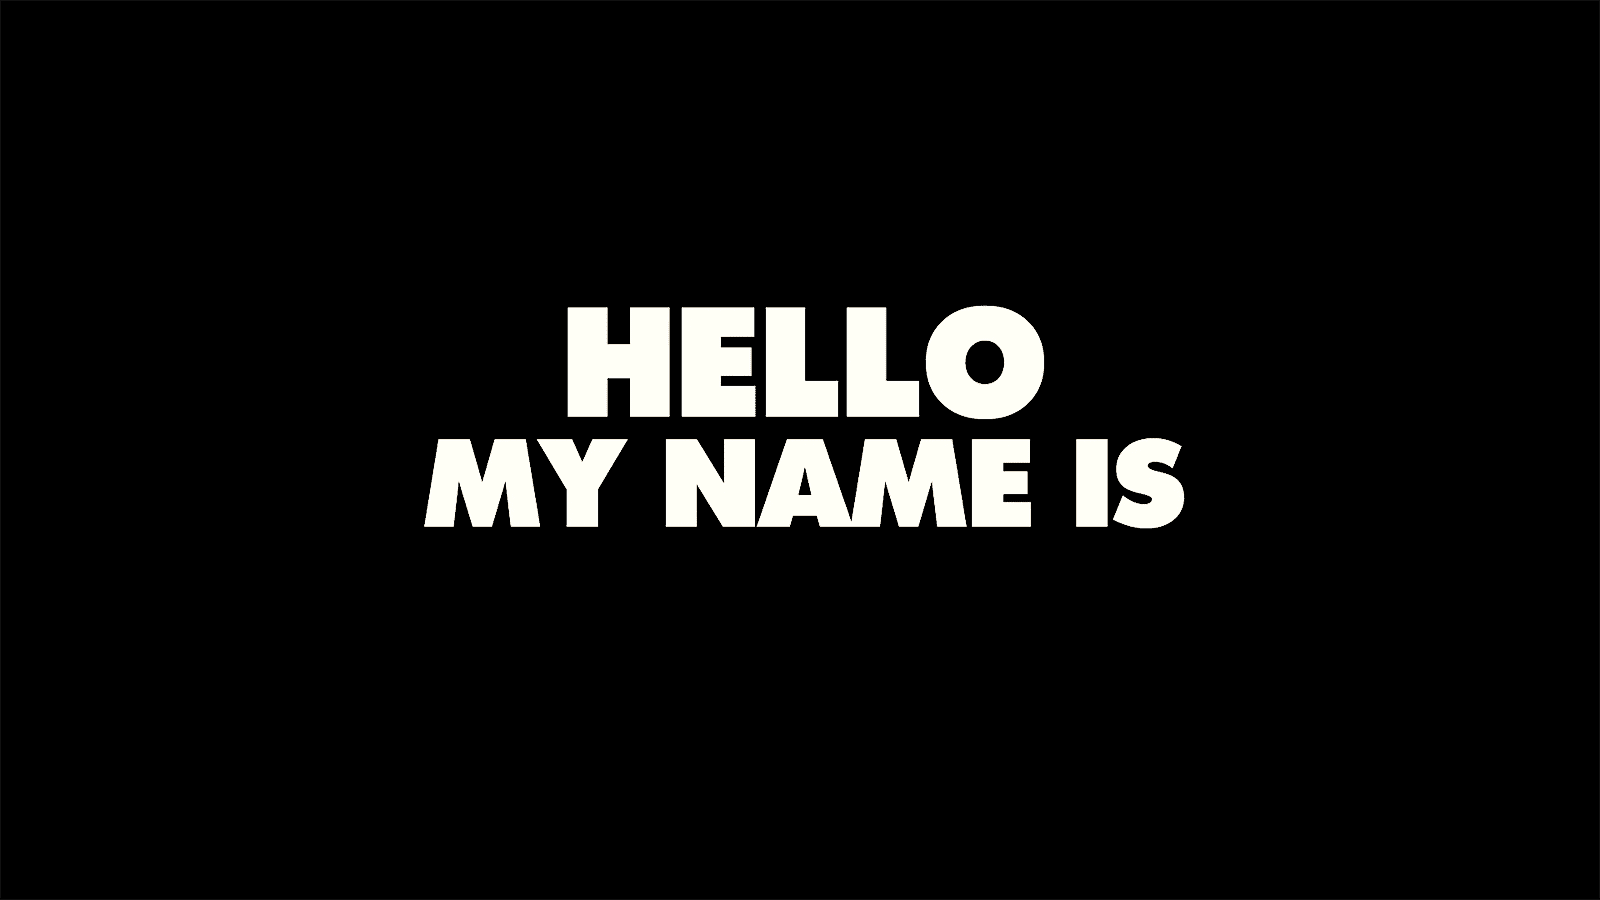 Trailer: Hello my name is – German Graffiti